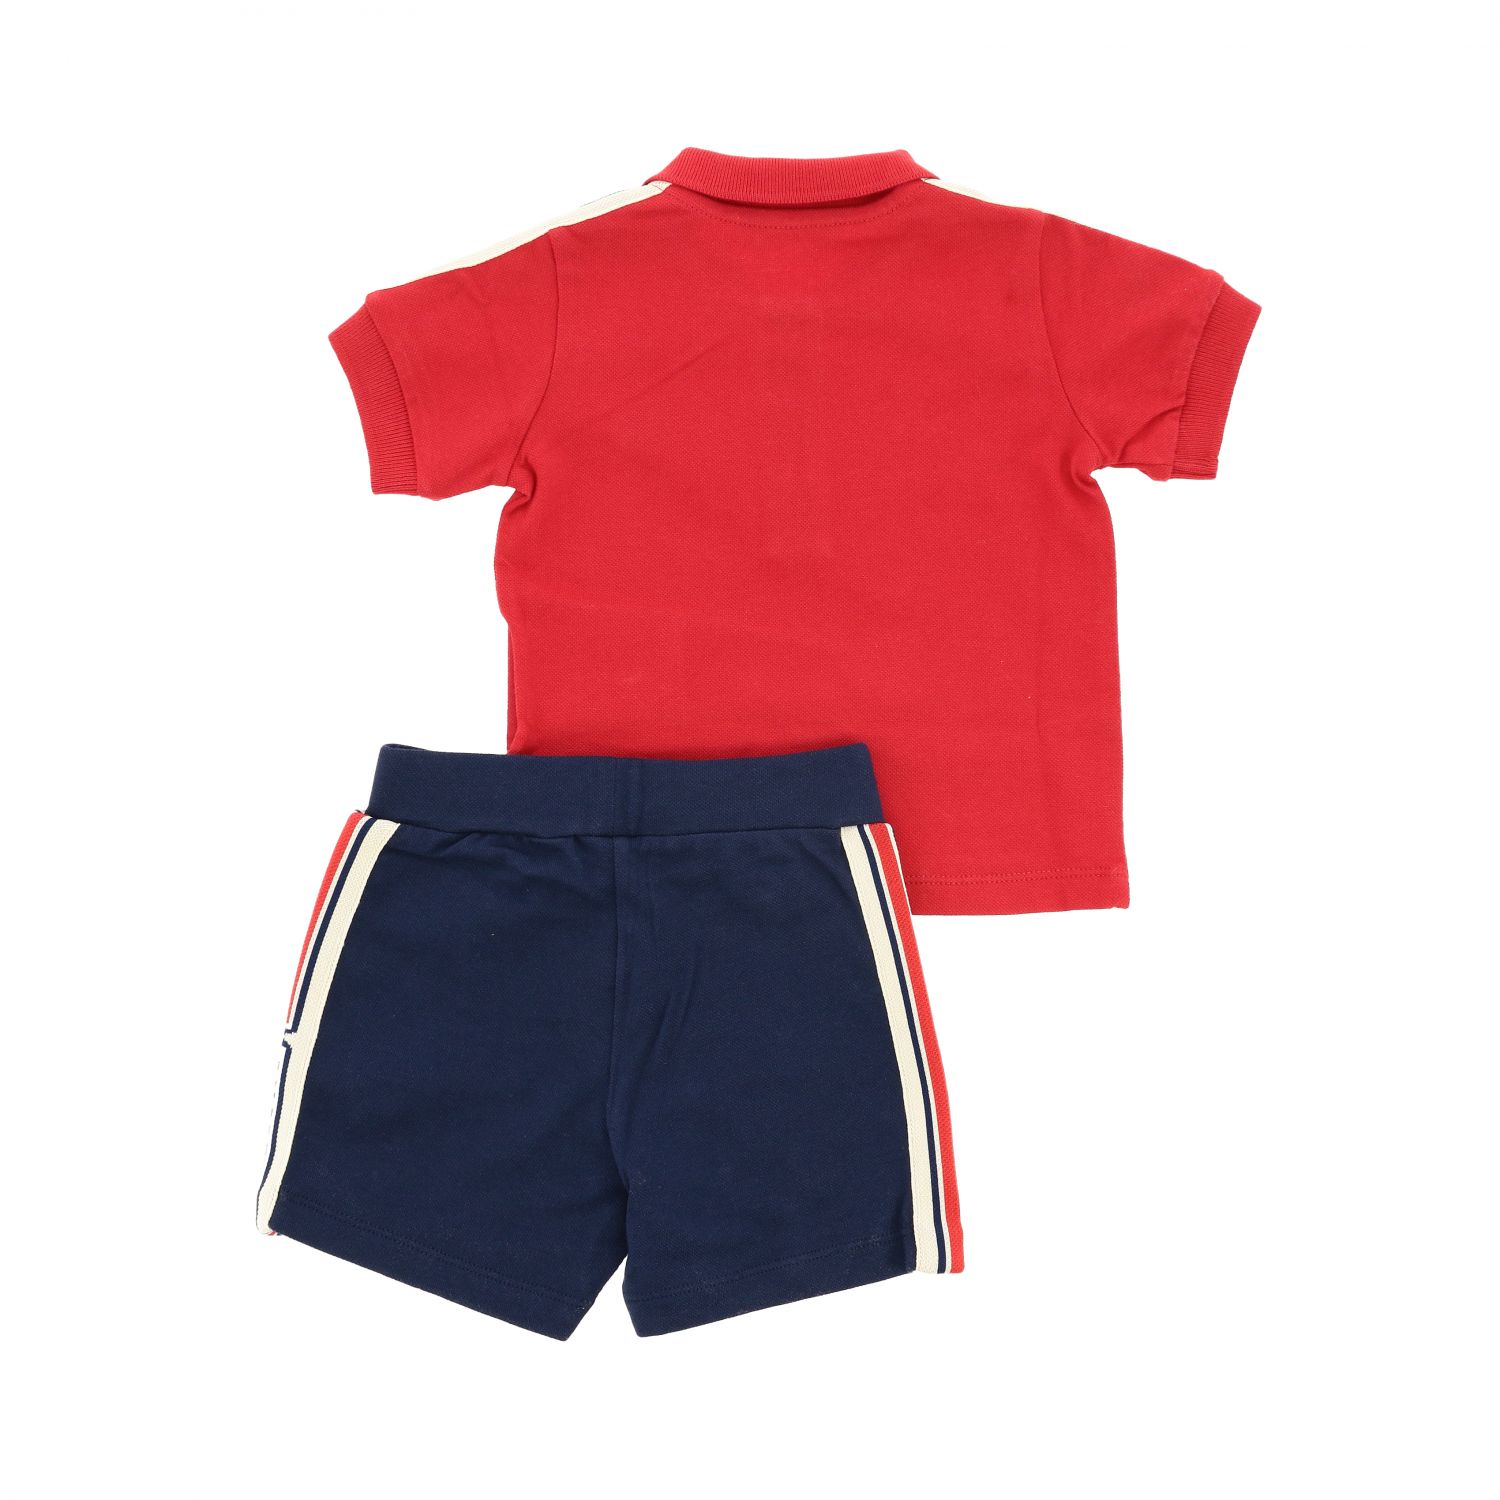 Moncler Polo set + shorts with logo and side bands outfit red 2